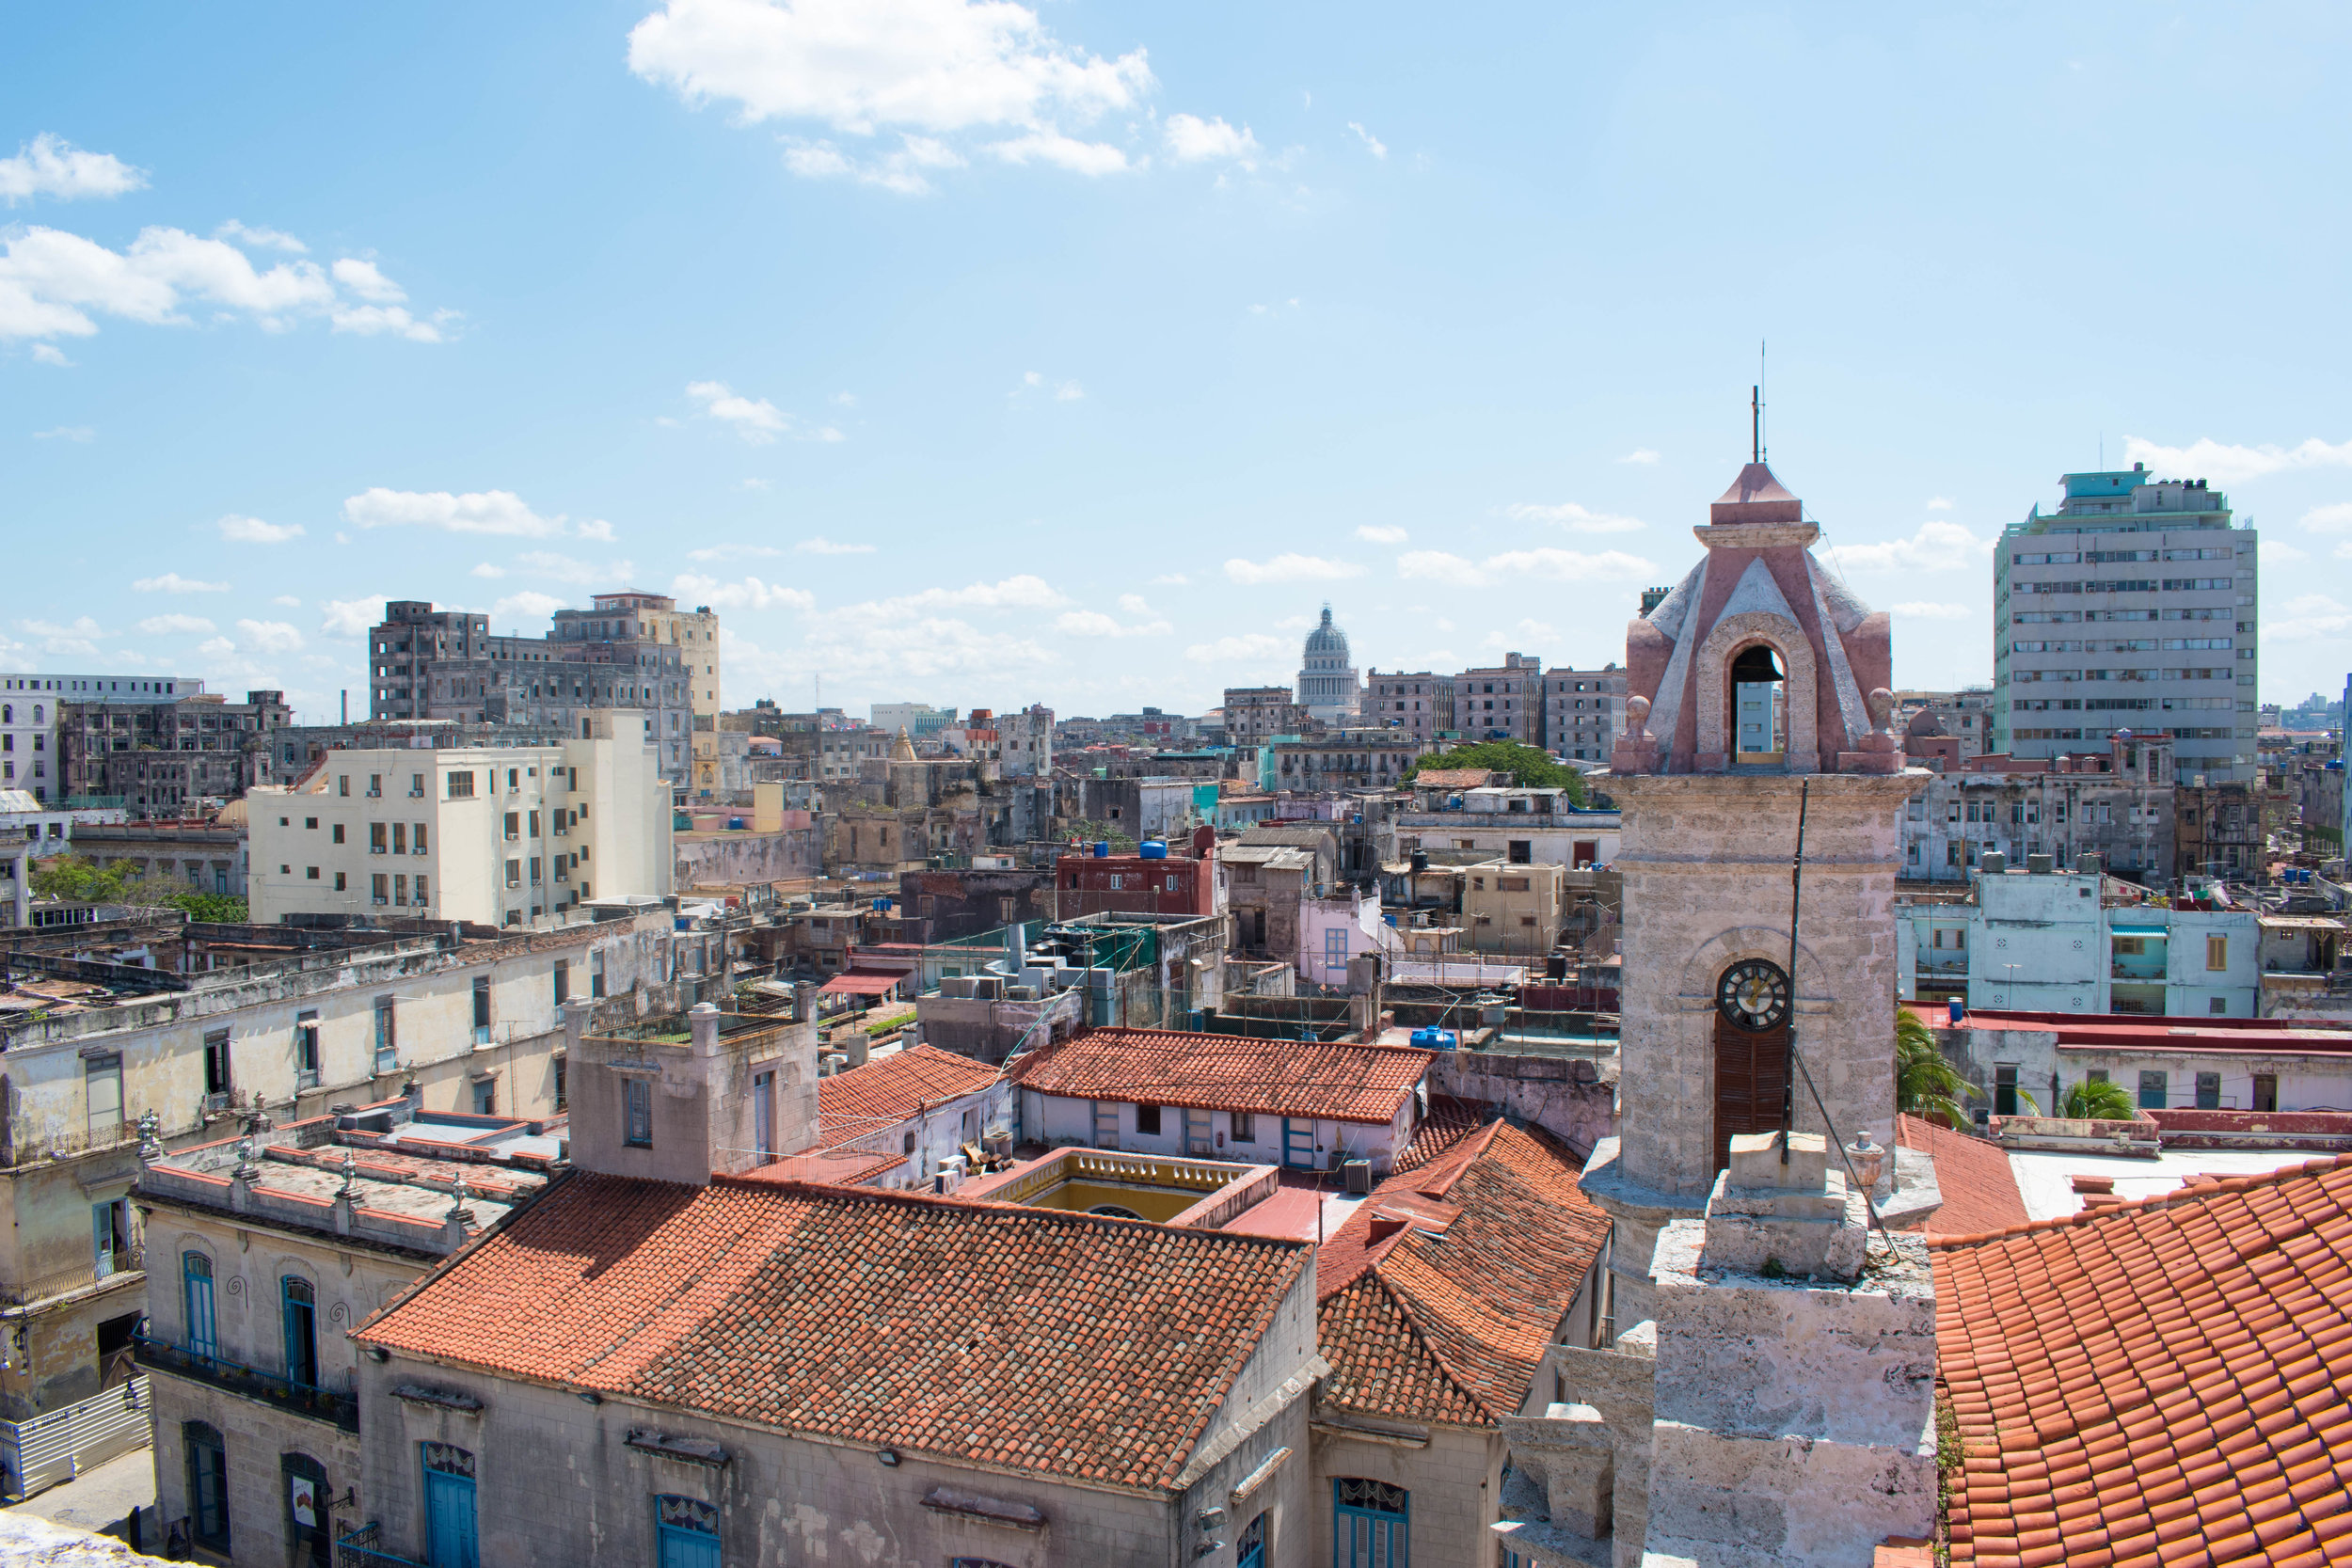 The View From The Ball Tower in Havana, Cuba